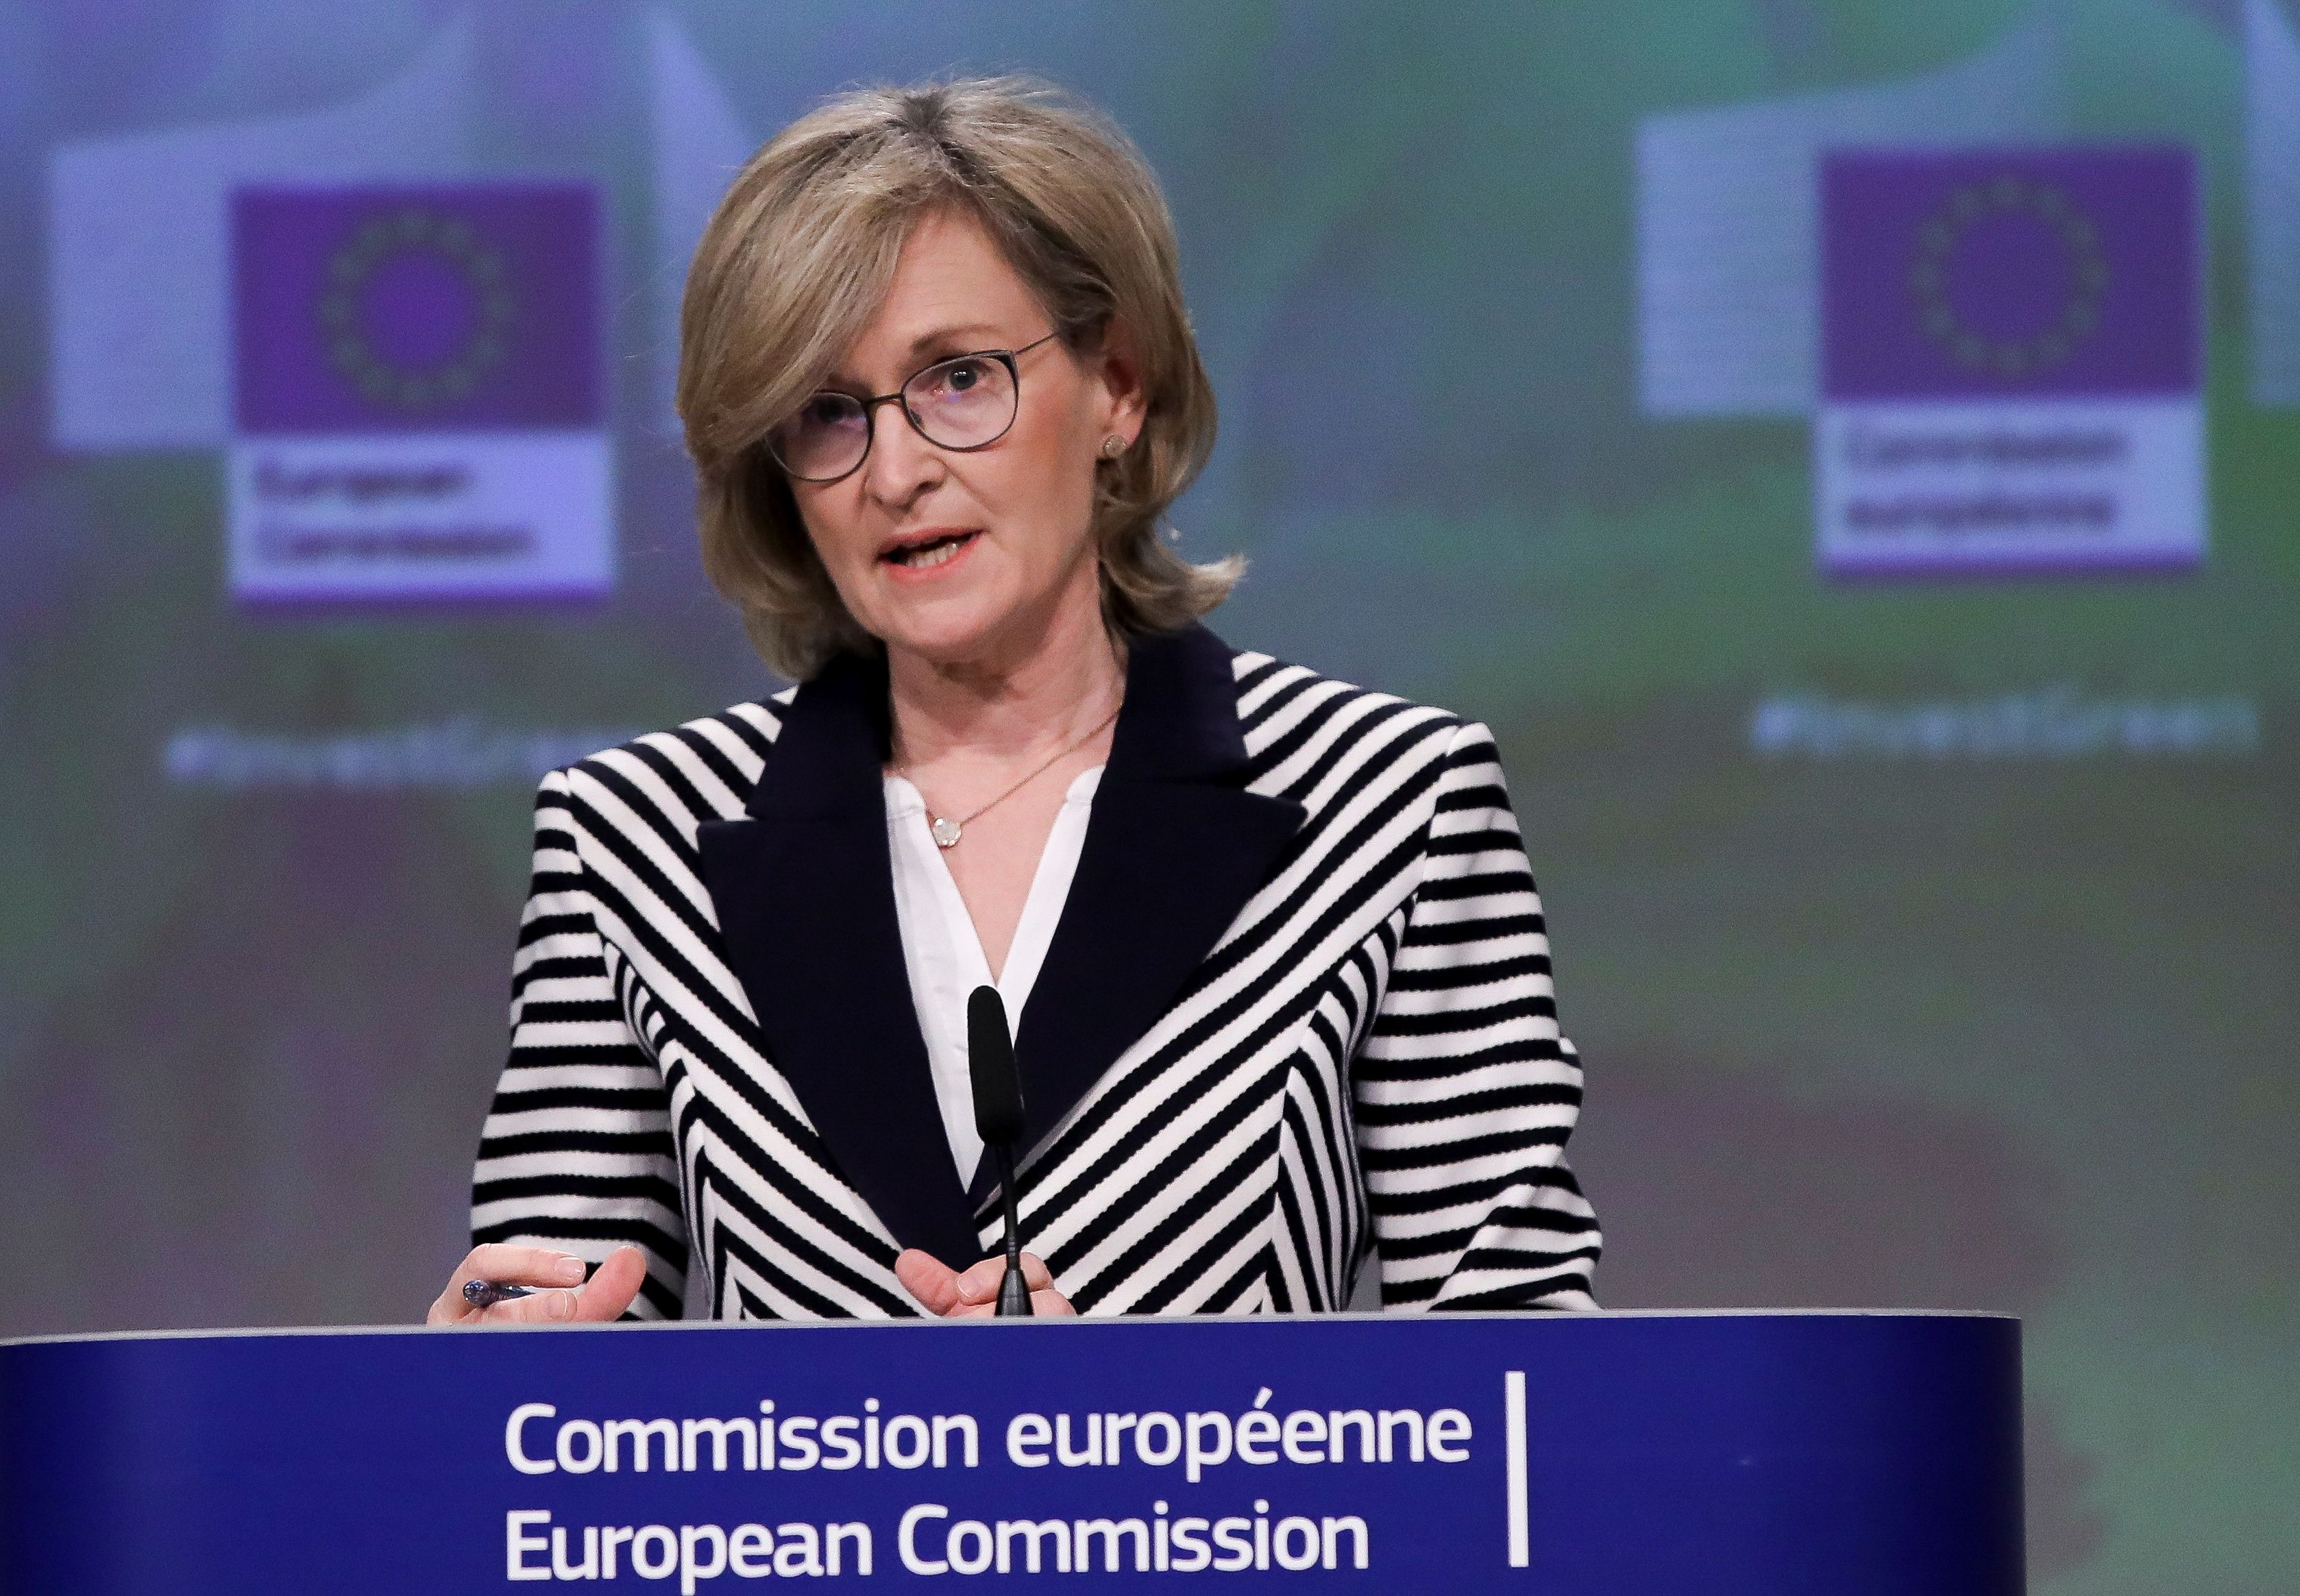 European Commissioner for Financial Services, Financial Stability and the Capital Markets Union, Mairead McGuinness speaks at a media conference on the EU's climate change mitigation and adaptation taxonomy following a weekly meeting of EU Commission in Brussels, Belgium, April 21, 2021. Olivier Hoslet/Pool via REUTERS